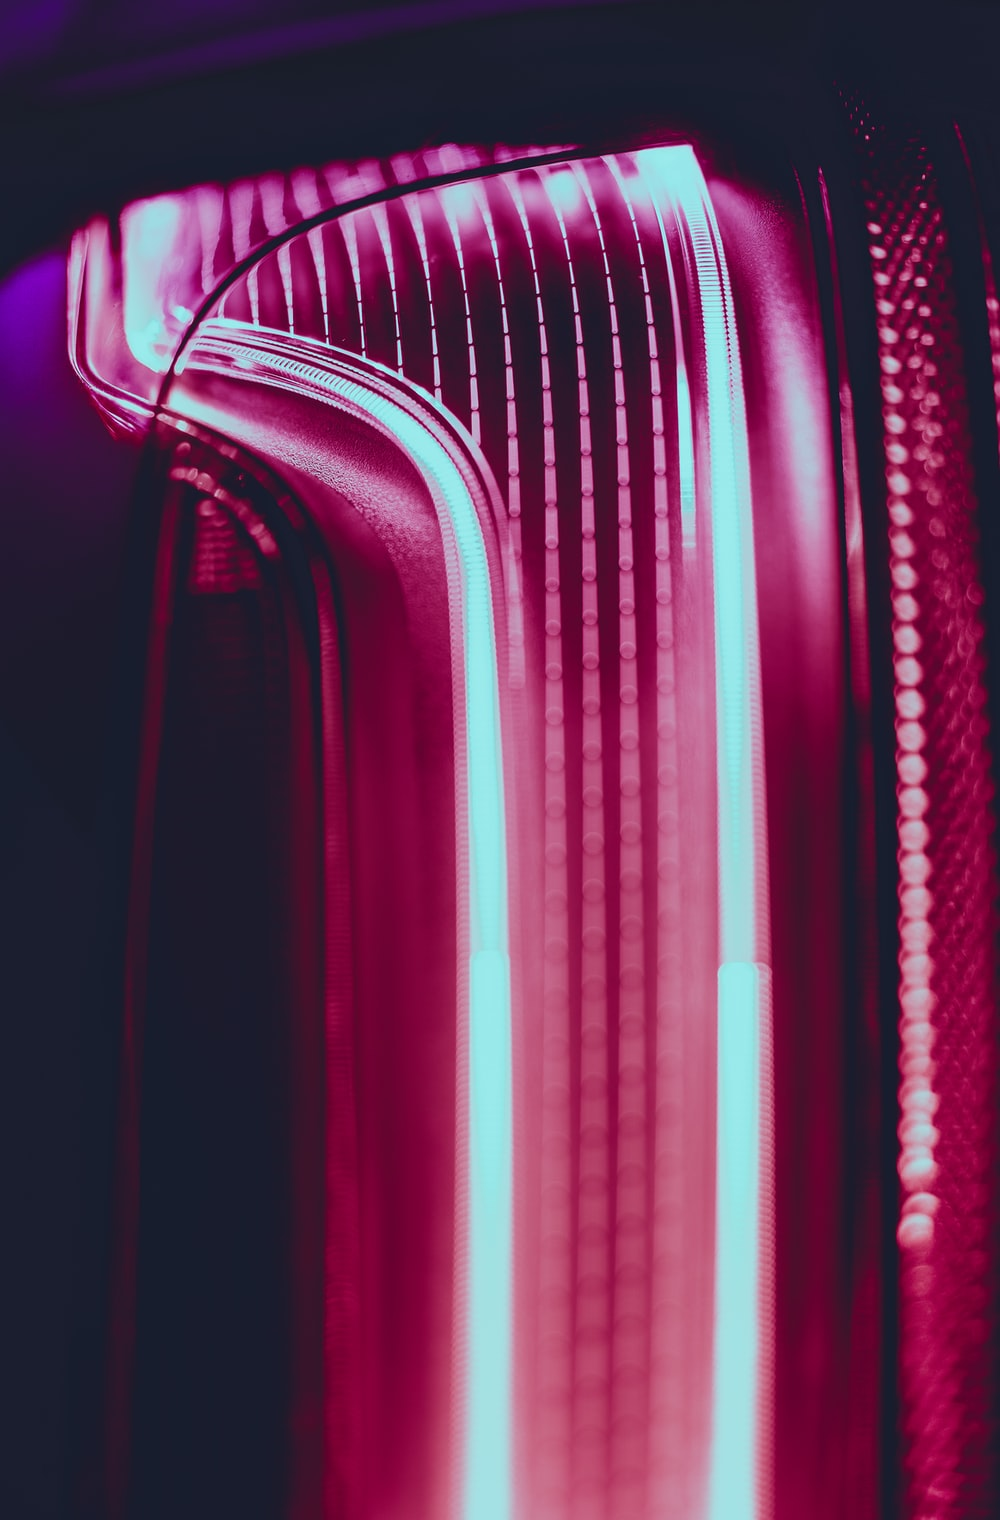 Car Neon Pictures Download Free Images On Unsplash